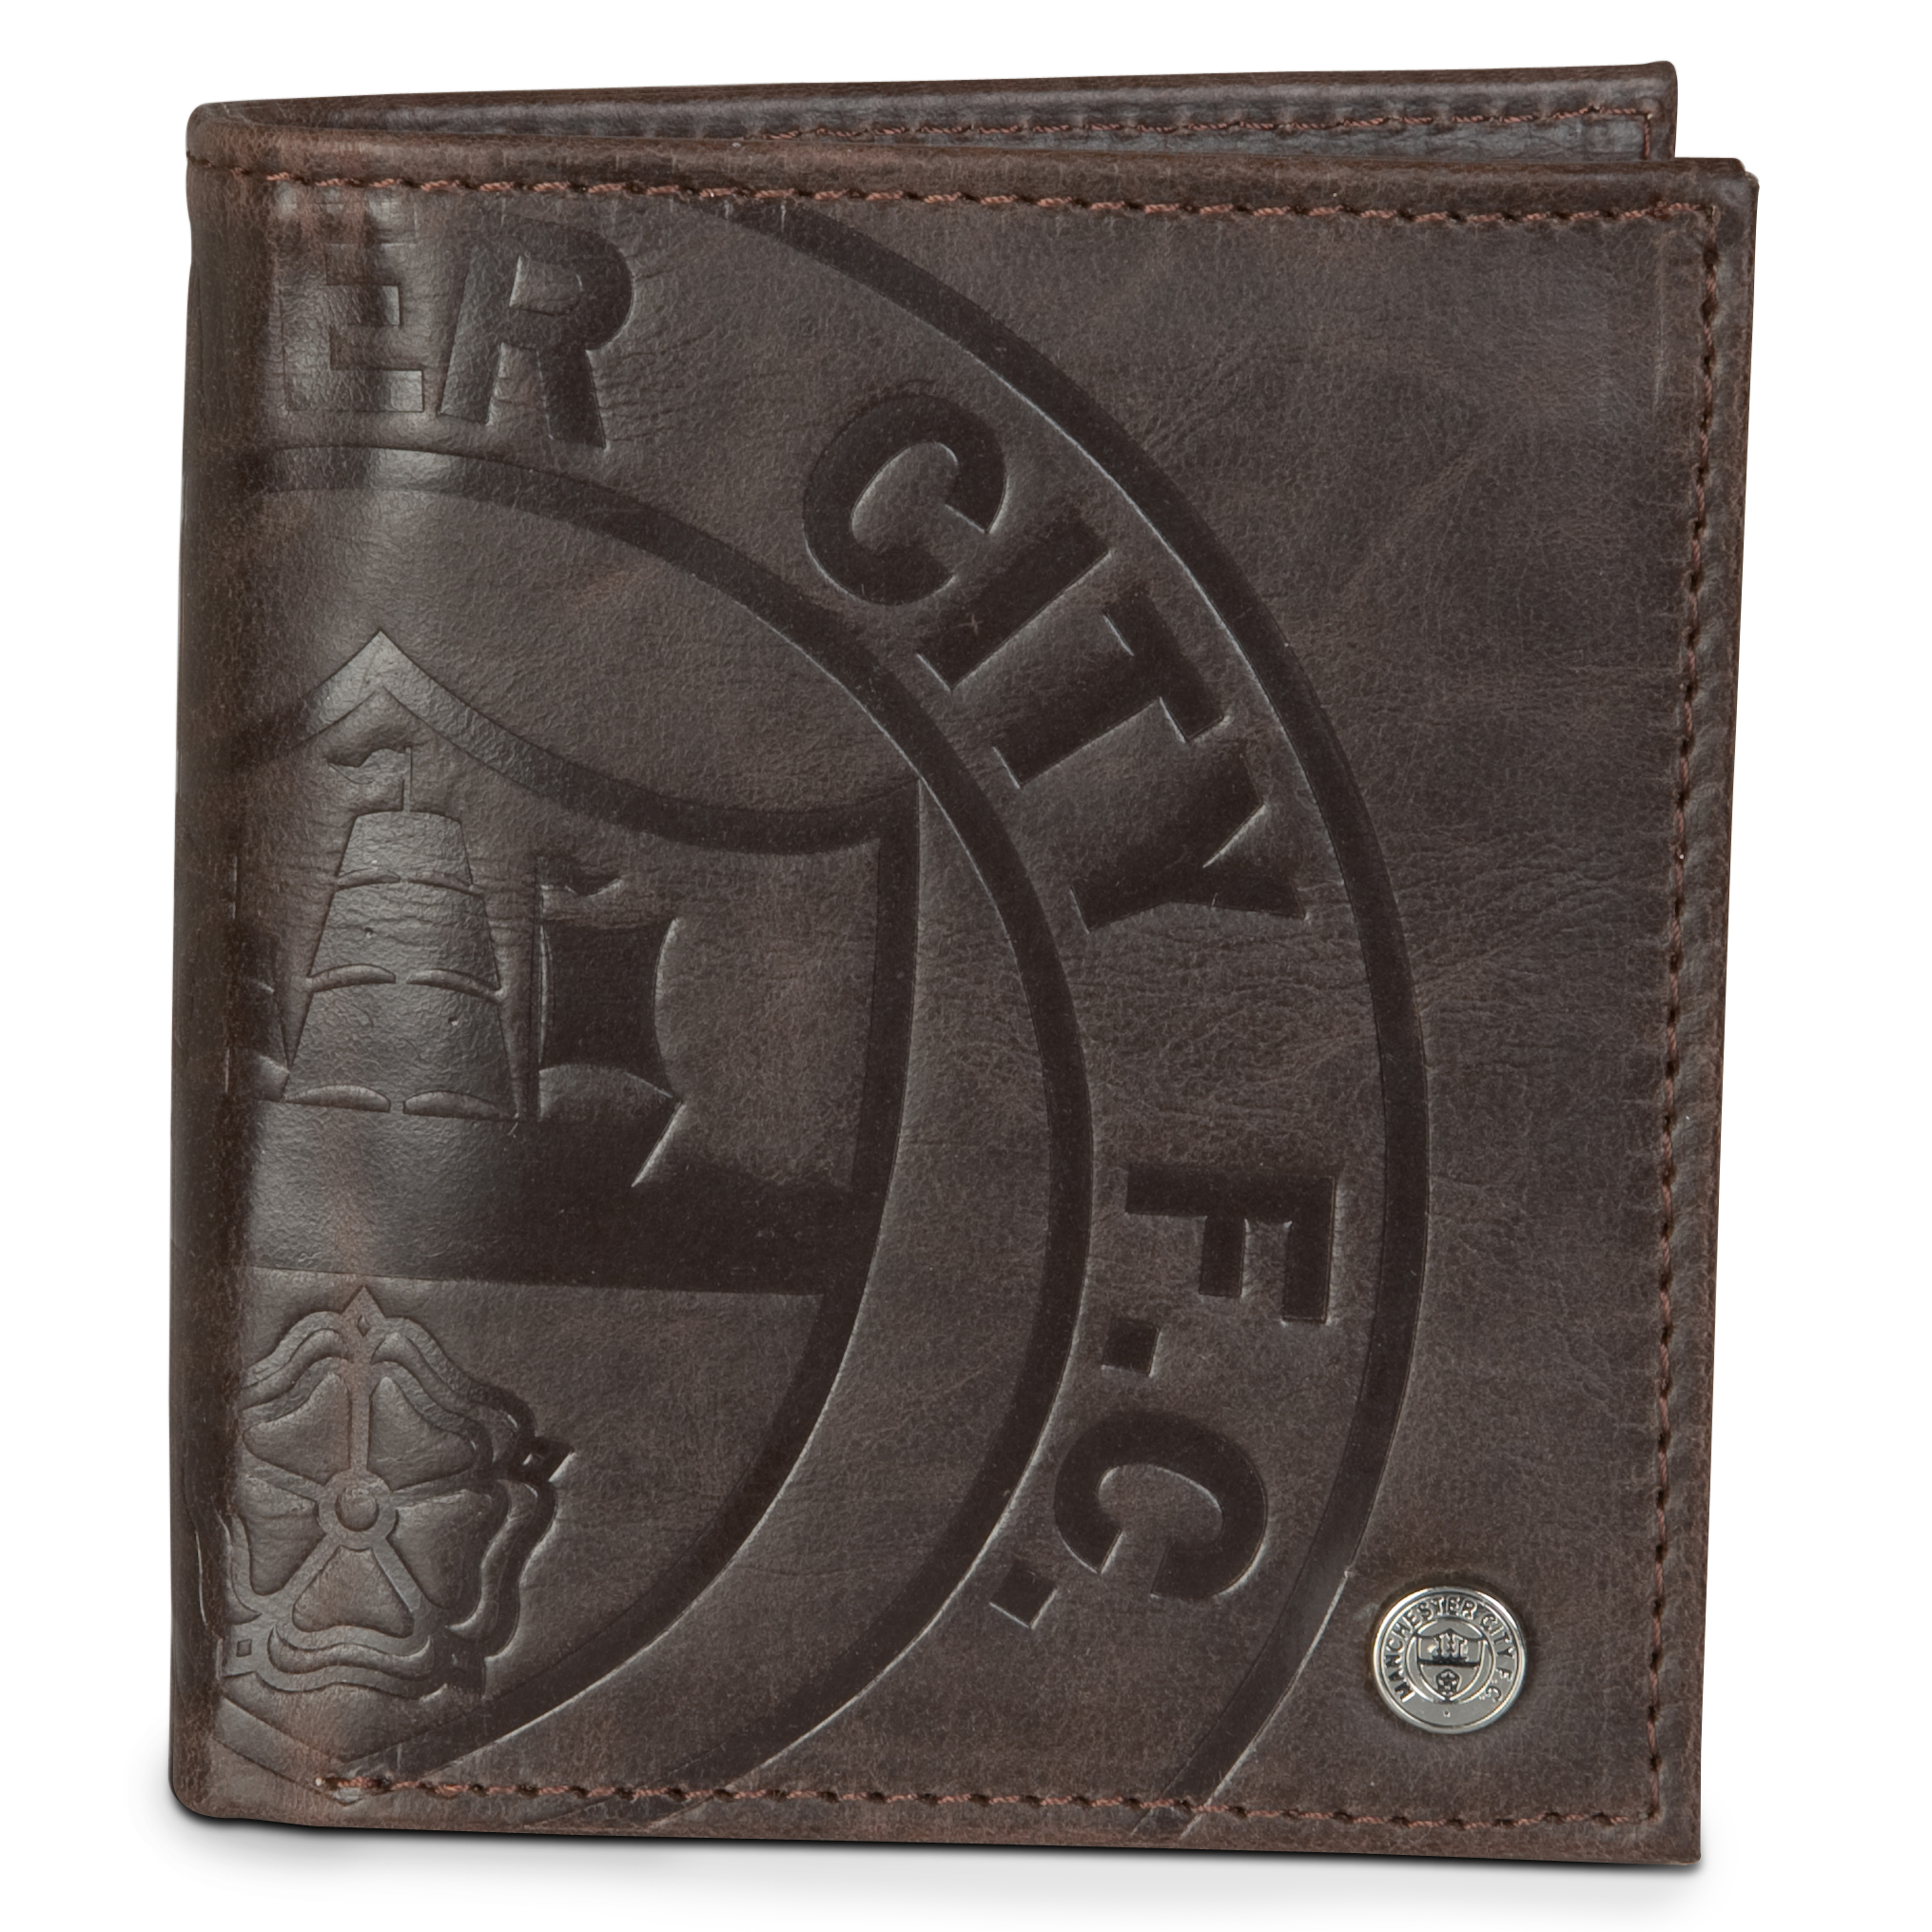 Manchester City Leather Wallet